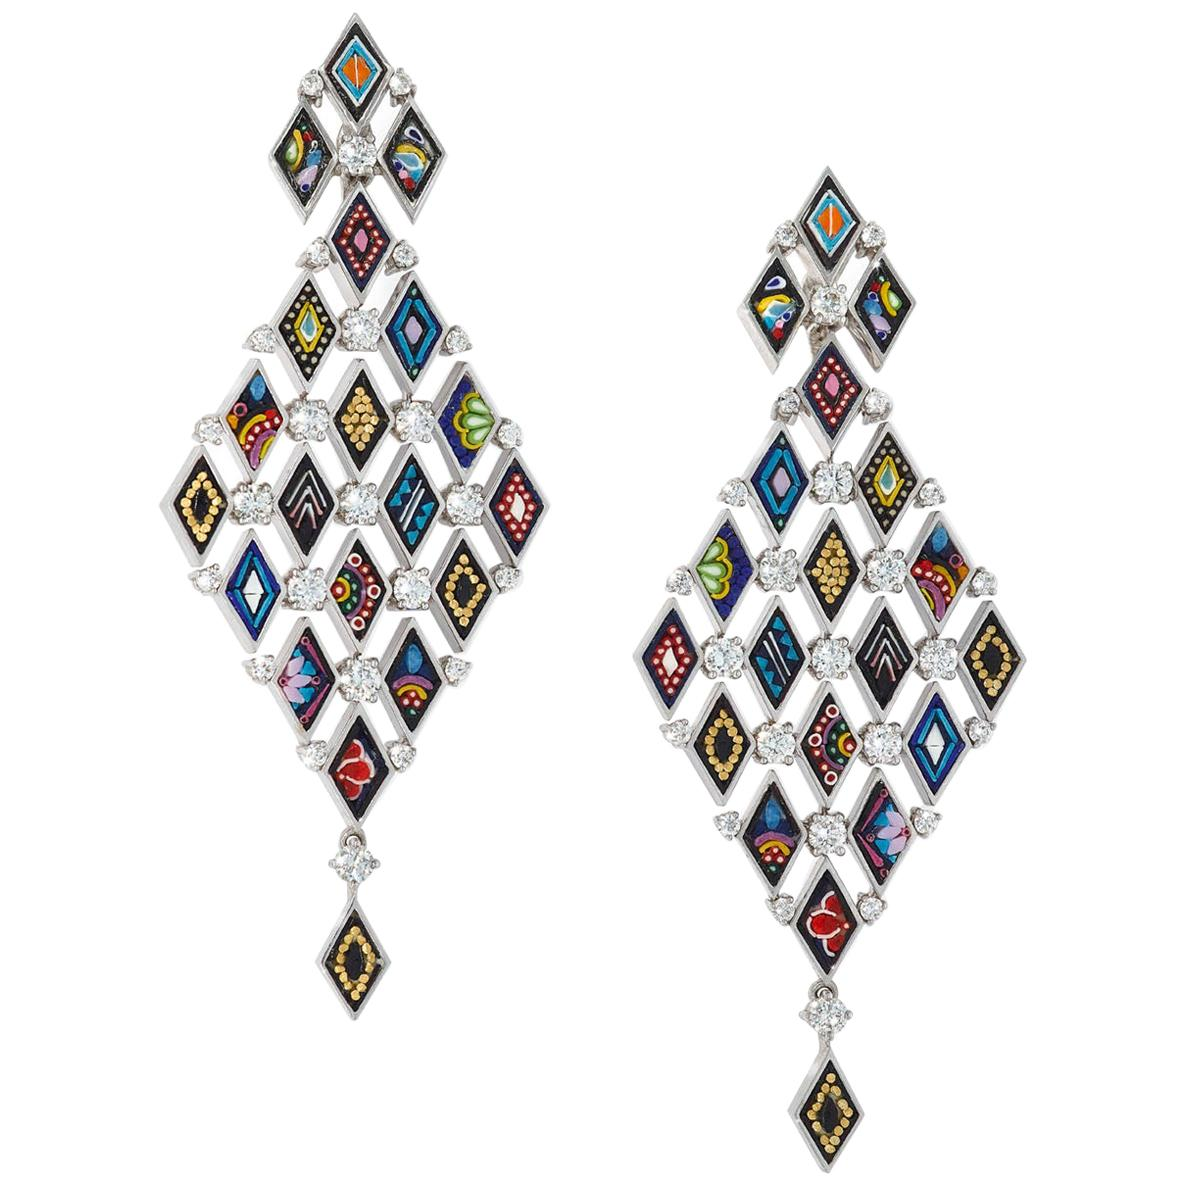 Stylish Modern Earrings White Gold White Diamonds HandDecorated with MicroMosaic